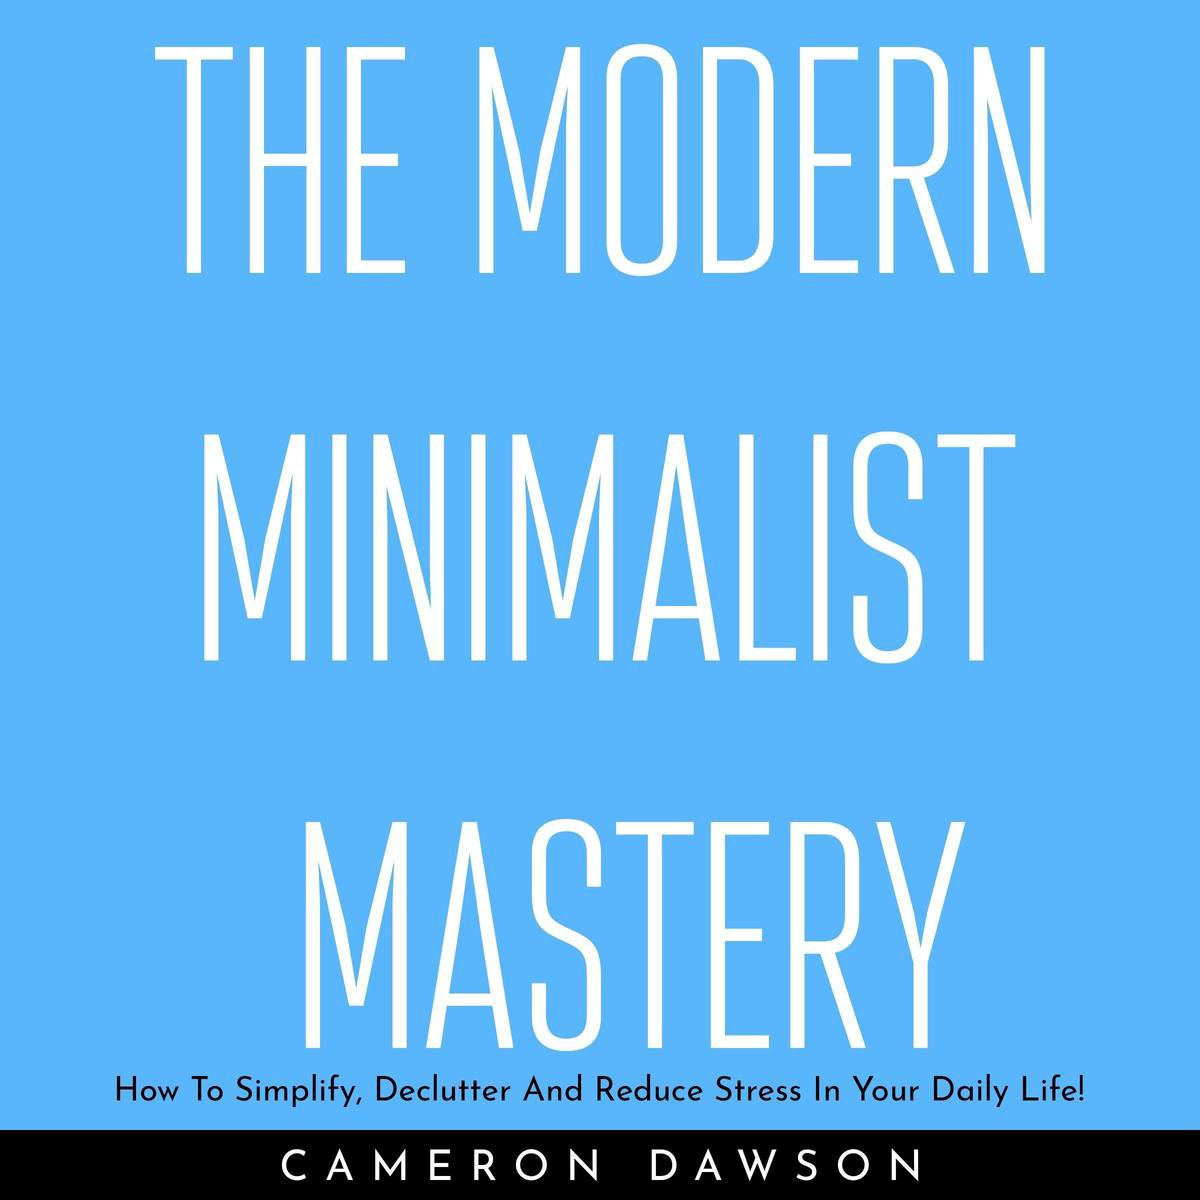 THE MODERN MINIMALIST MASTERY: How To Simplify, Declutter And Reduce Stress In Your Daily Life!